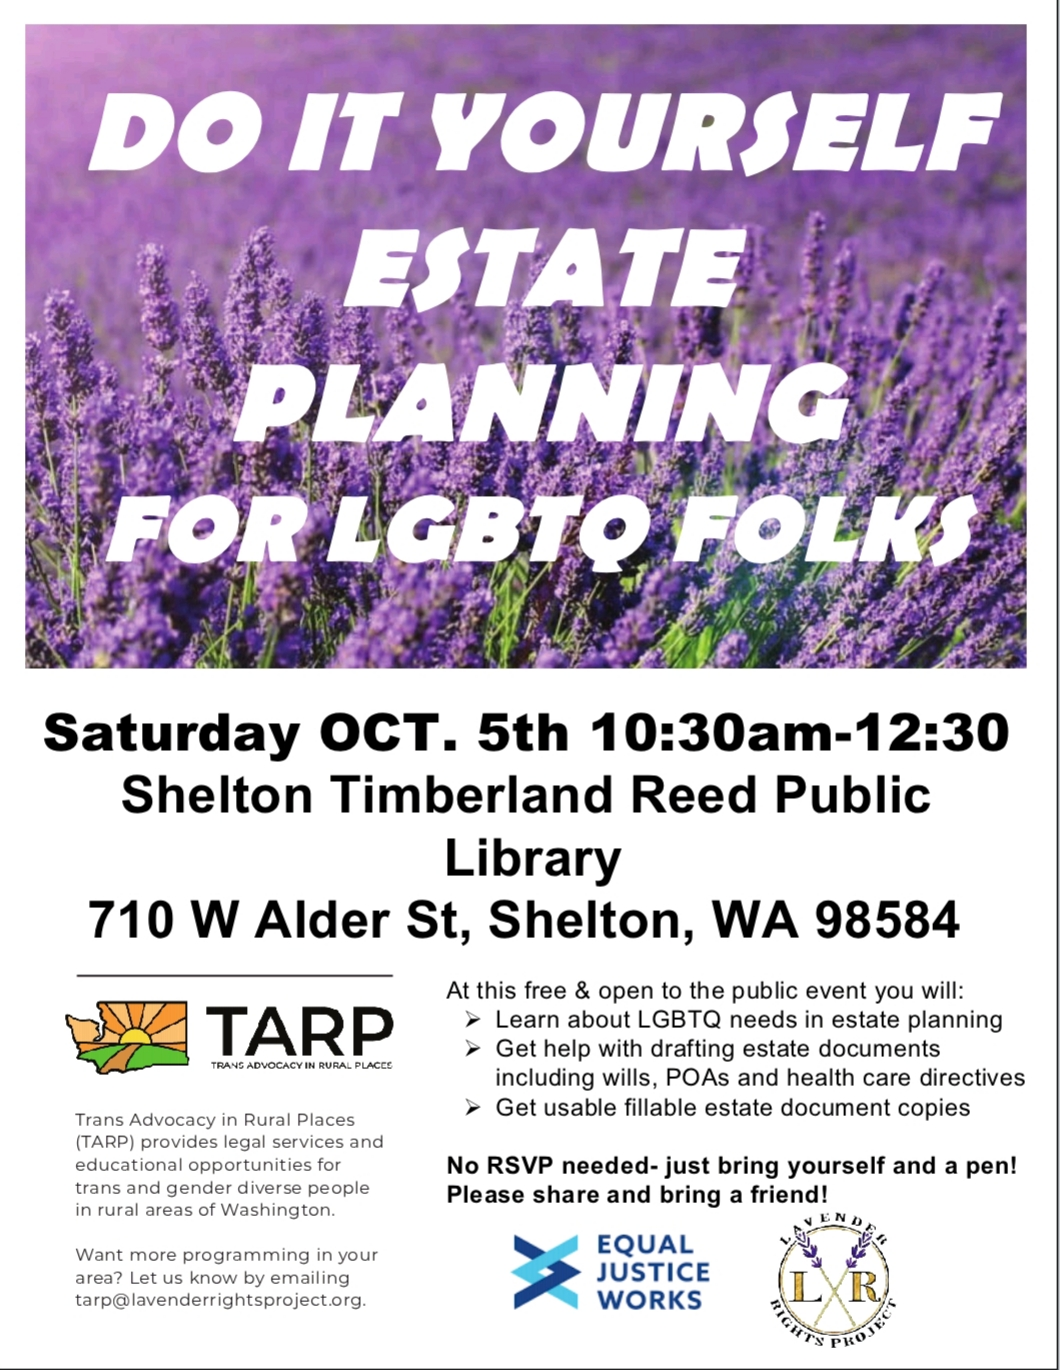 Join TARP this Saturday Oct 5th for a free LGBTQ Estate Planning Workshop in Shelton, WA! - When: 10/5/19 from 10:30 am to 12:30 pmWhere: At the Shelton Timberland Reed Library 710 W. Alder St, Shelton, WA 98584No need to RSVP! Email tarp@lavenderrightsproject.org for more info. Click on the image to the right to be taken to the FB event page.